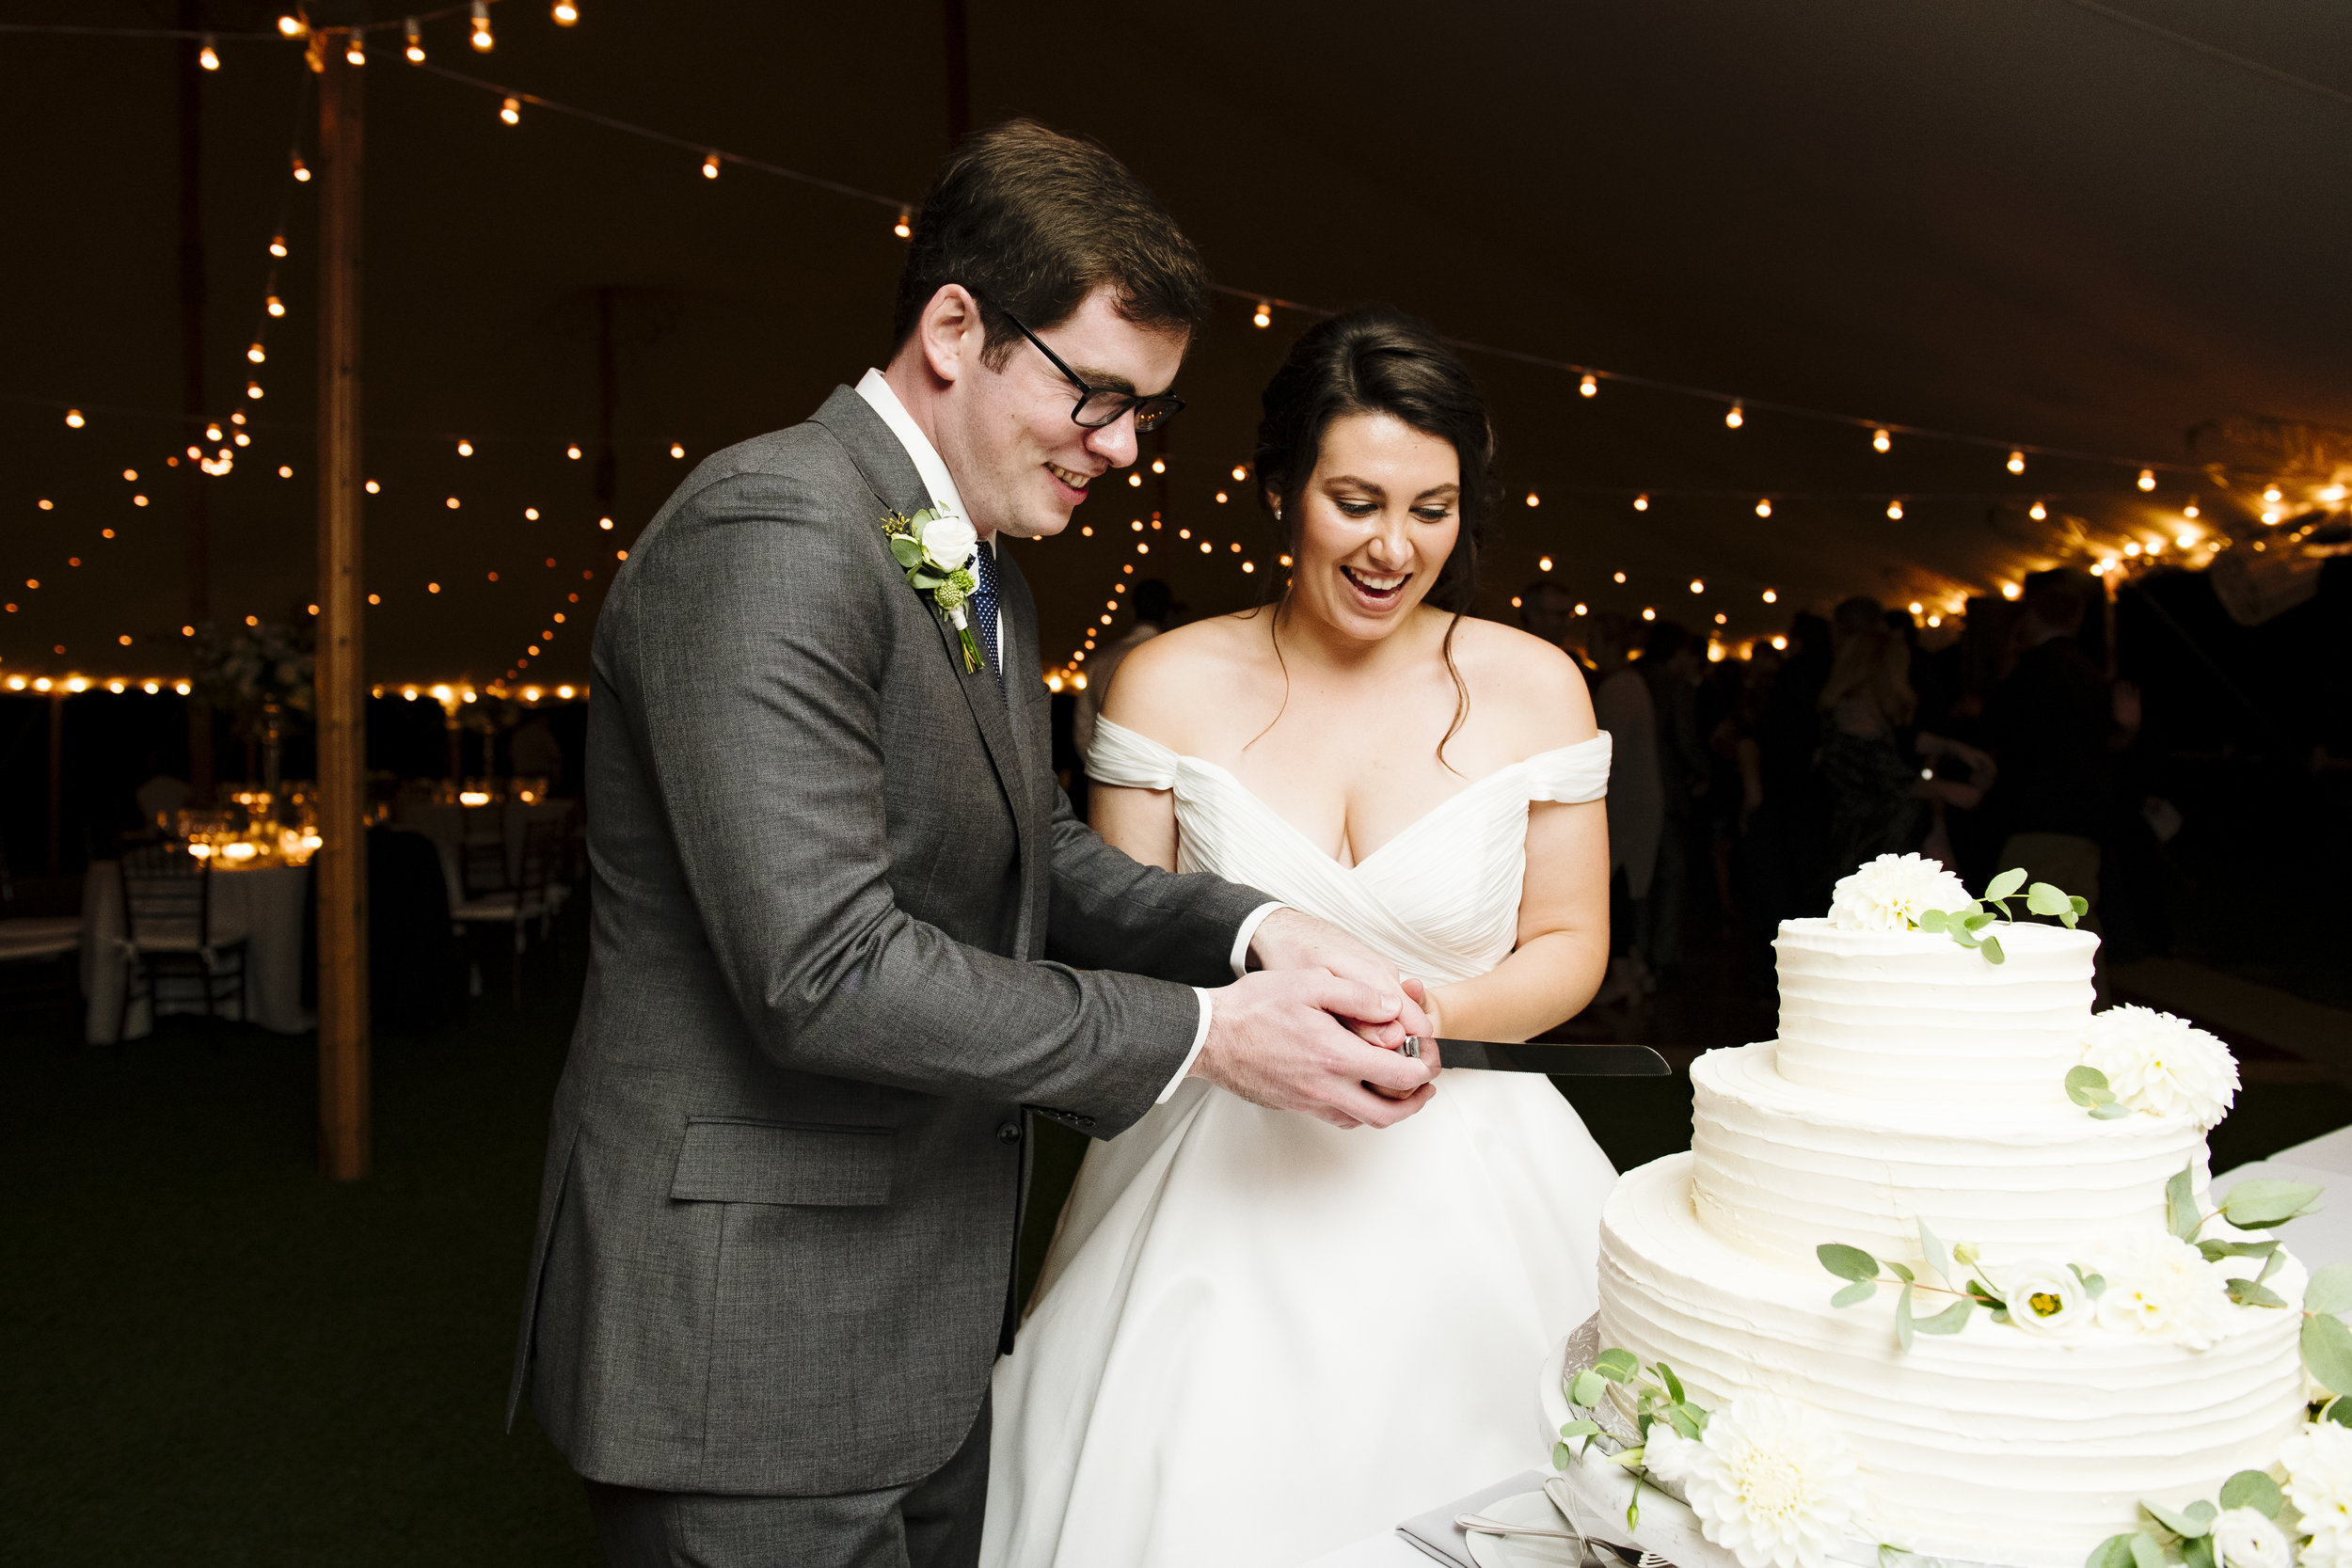 Cake cutting with the bride and groom at Jonathan Edwards Winery - Pearl Weddings & Events